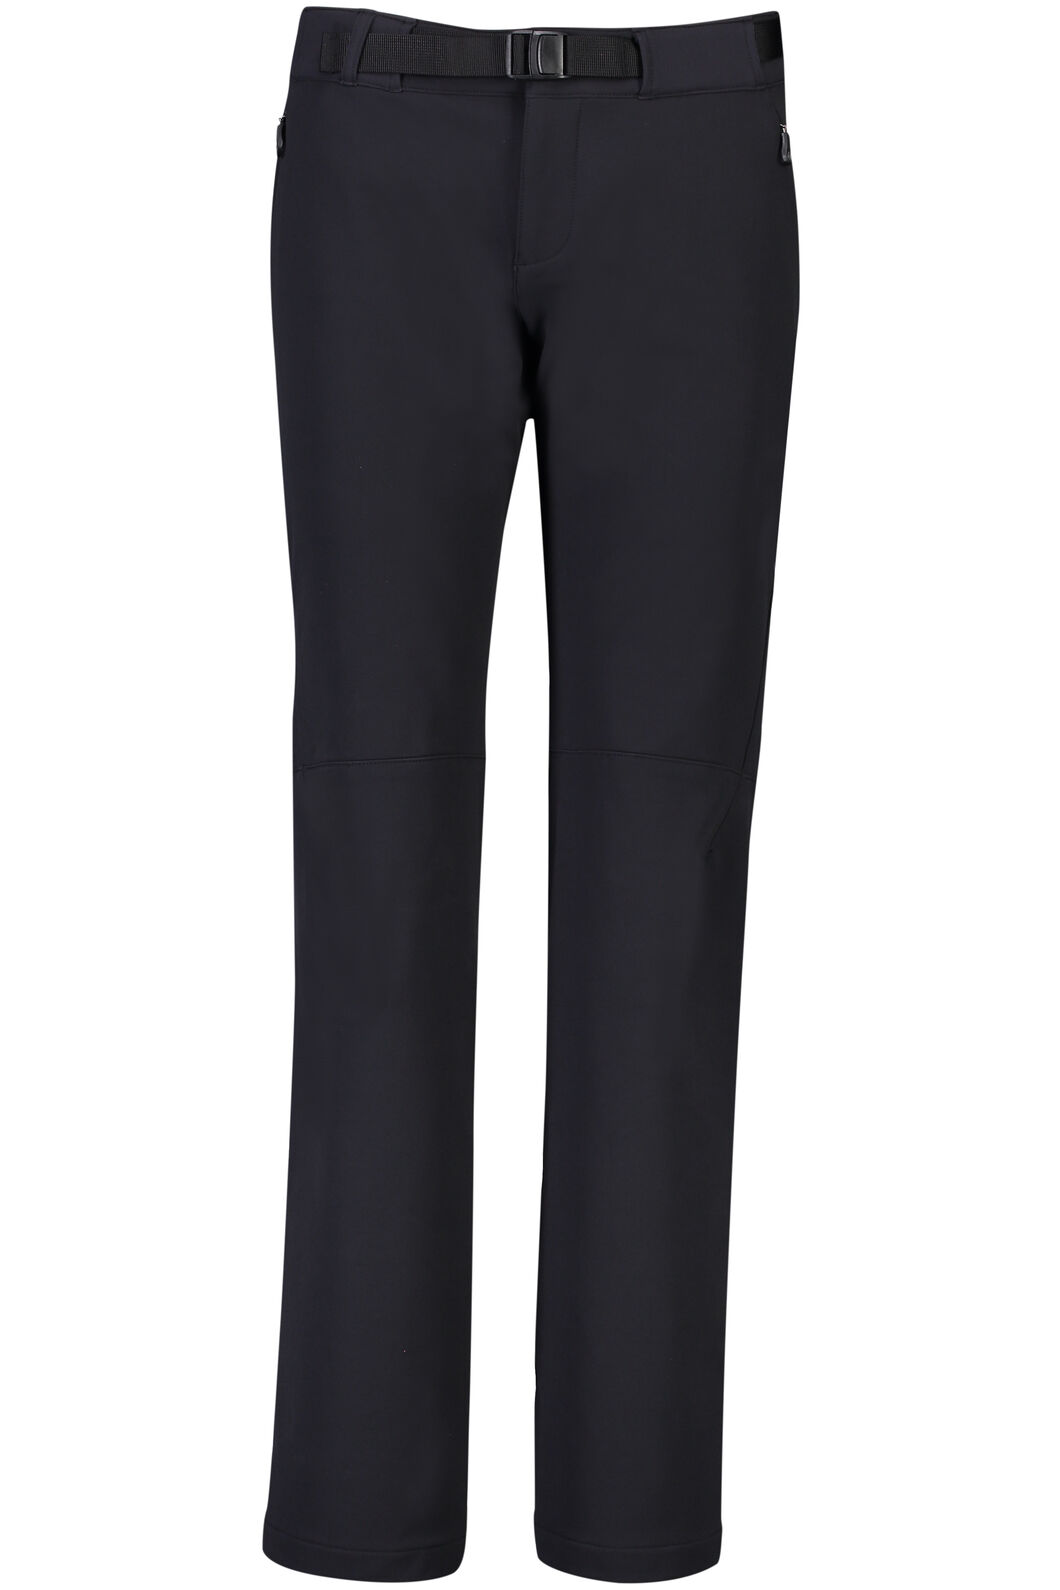 Nemesis Softshell Pants - Women's, Black, hi-res